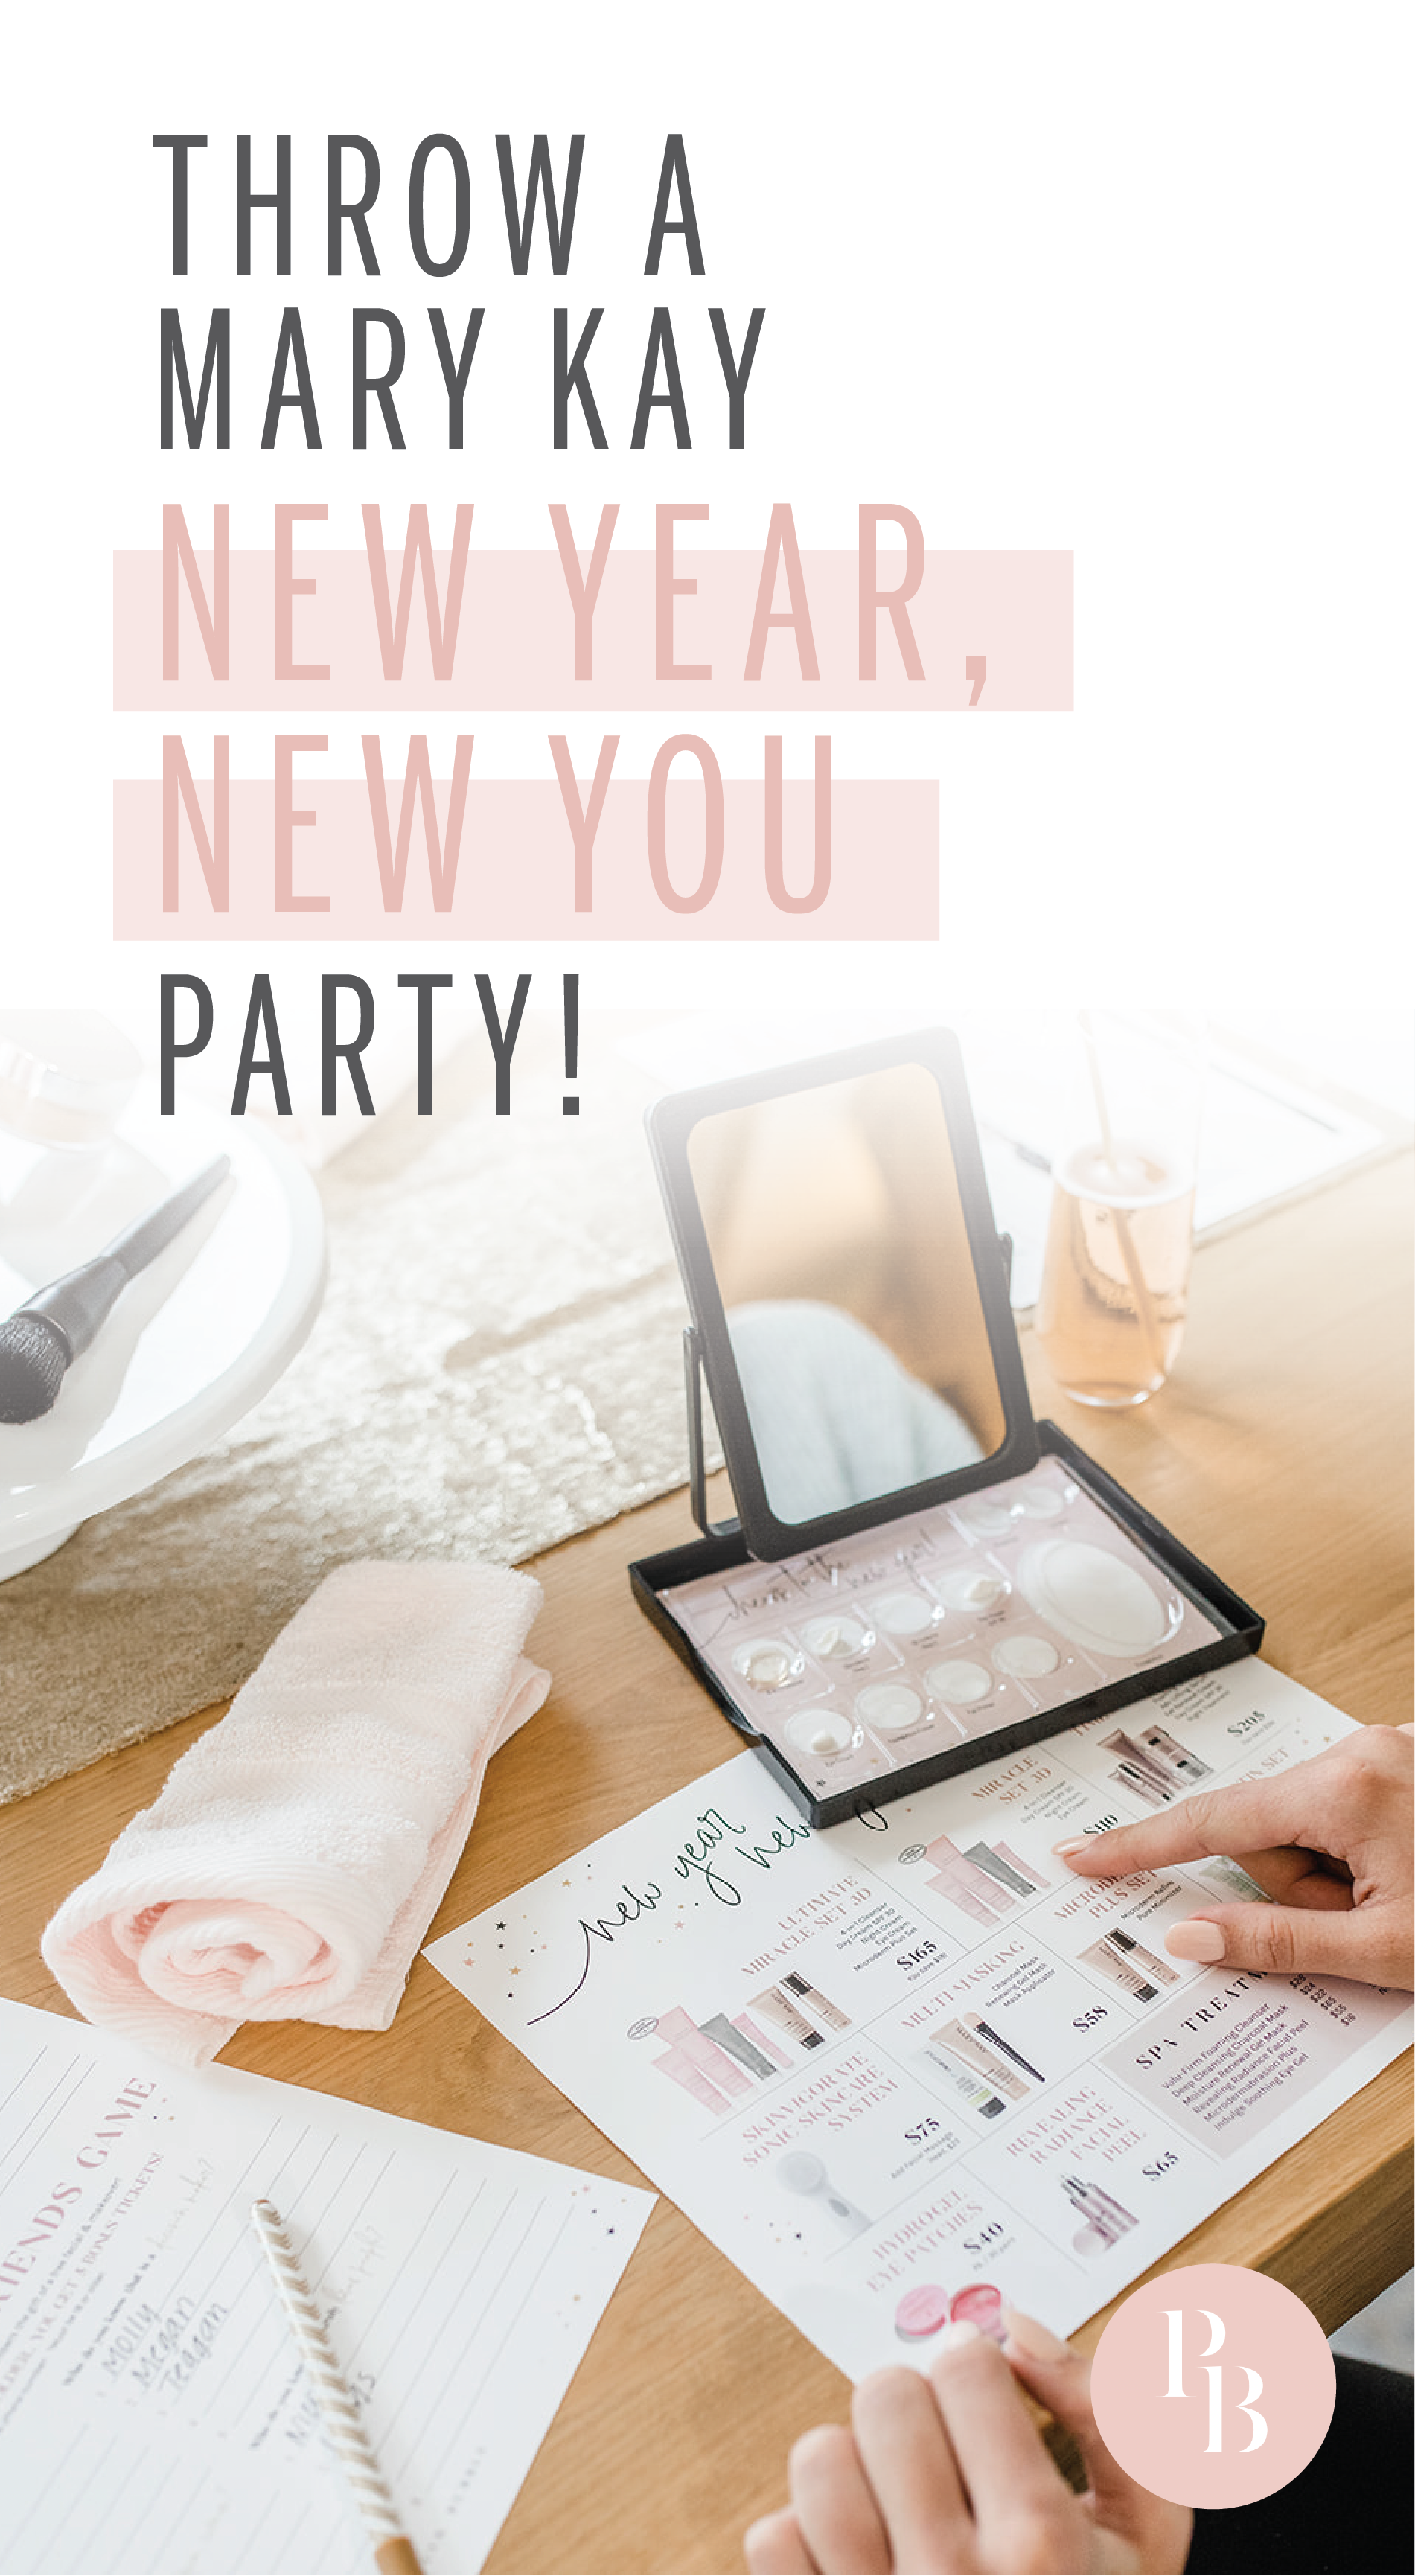 Mary Kay New Year New You Party Essentials Find It Only At Www Thepinkbubble Co In 2020 Mary Kay New Year New You Party